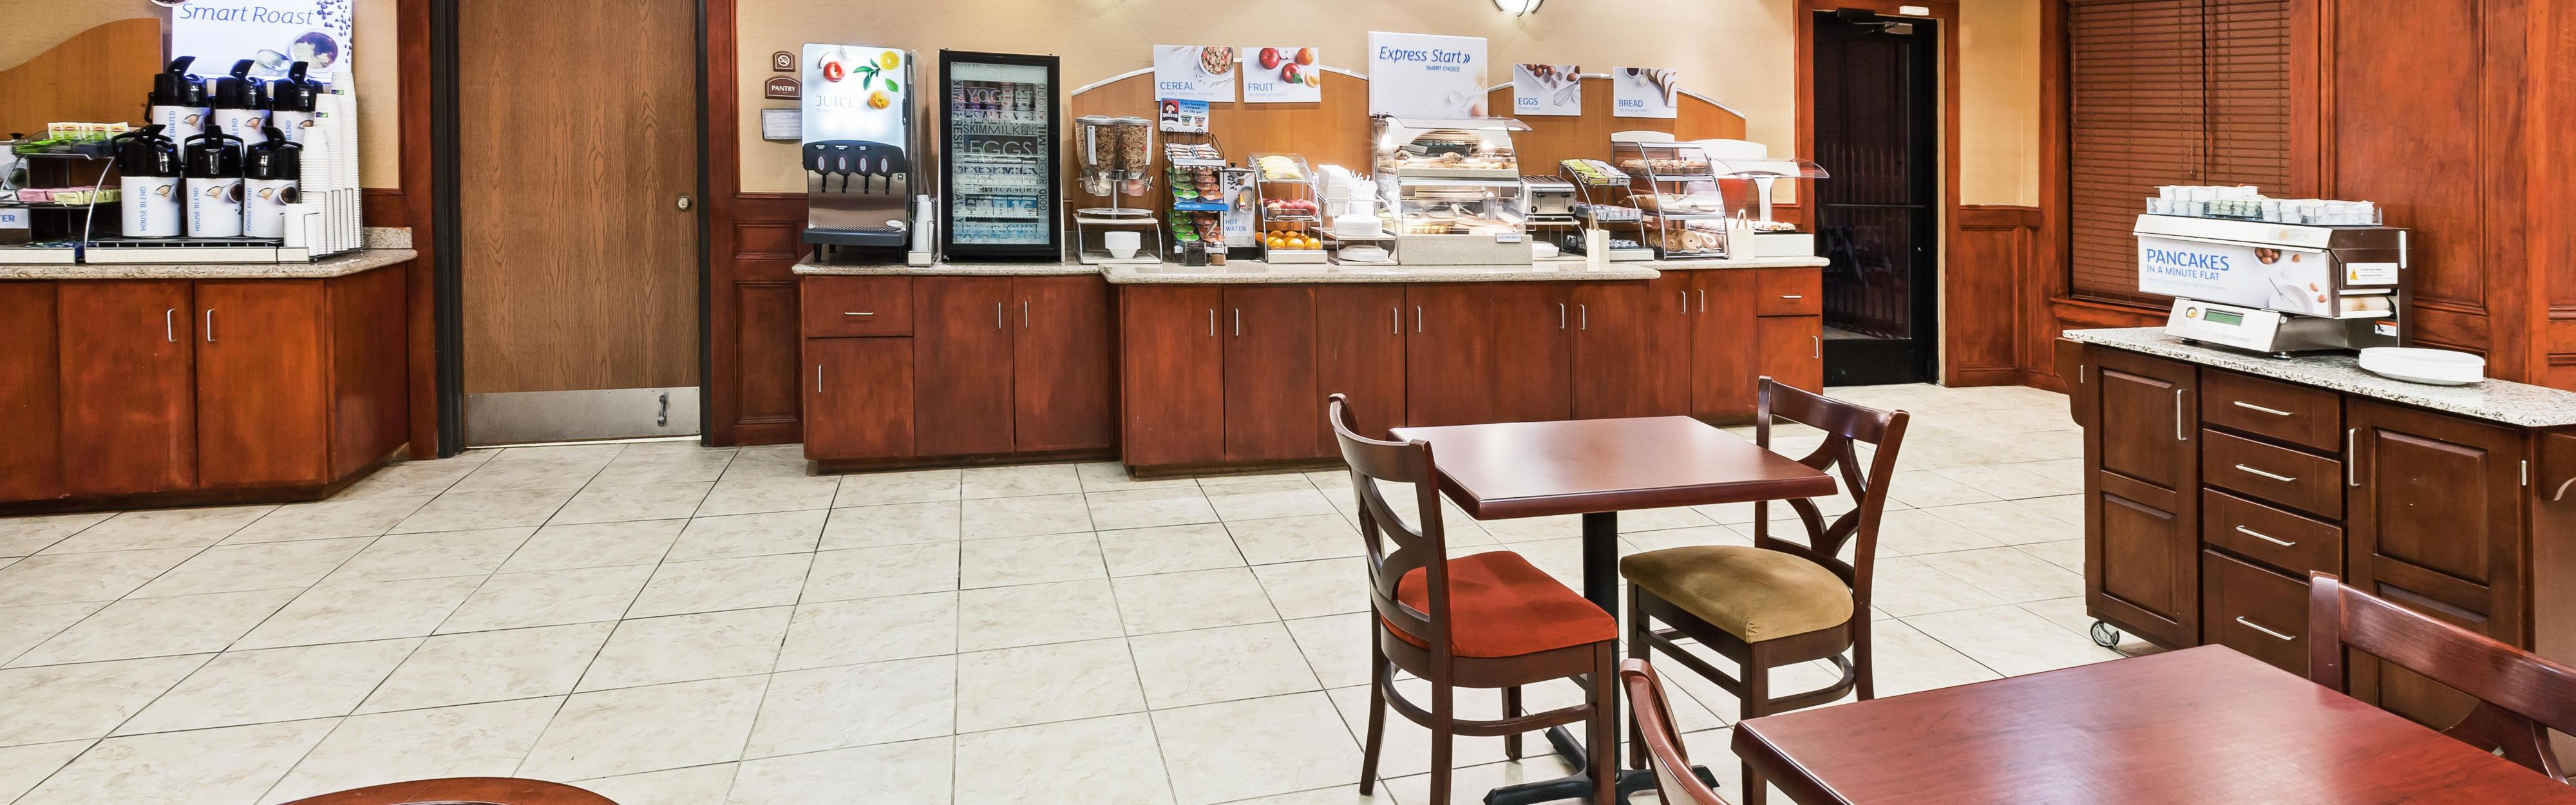 Holiday Inn Express & Suites Laredo-Event Center Area image 3